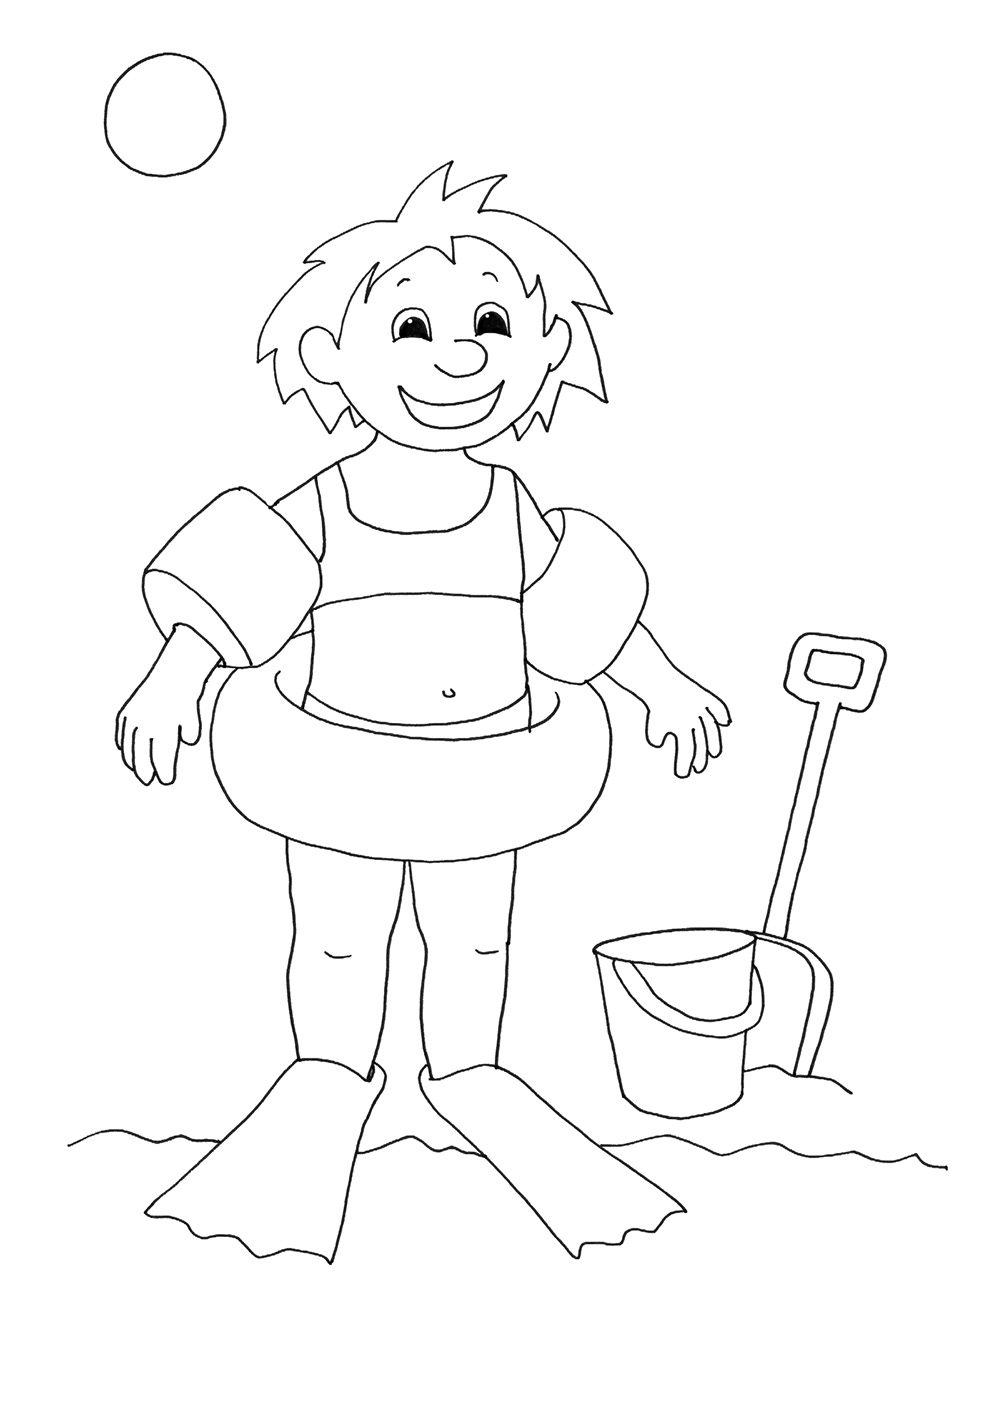 kids swimming drawing at getdrawings com free for personal use